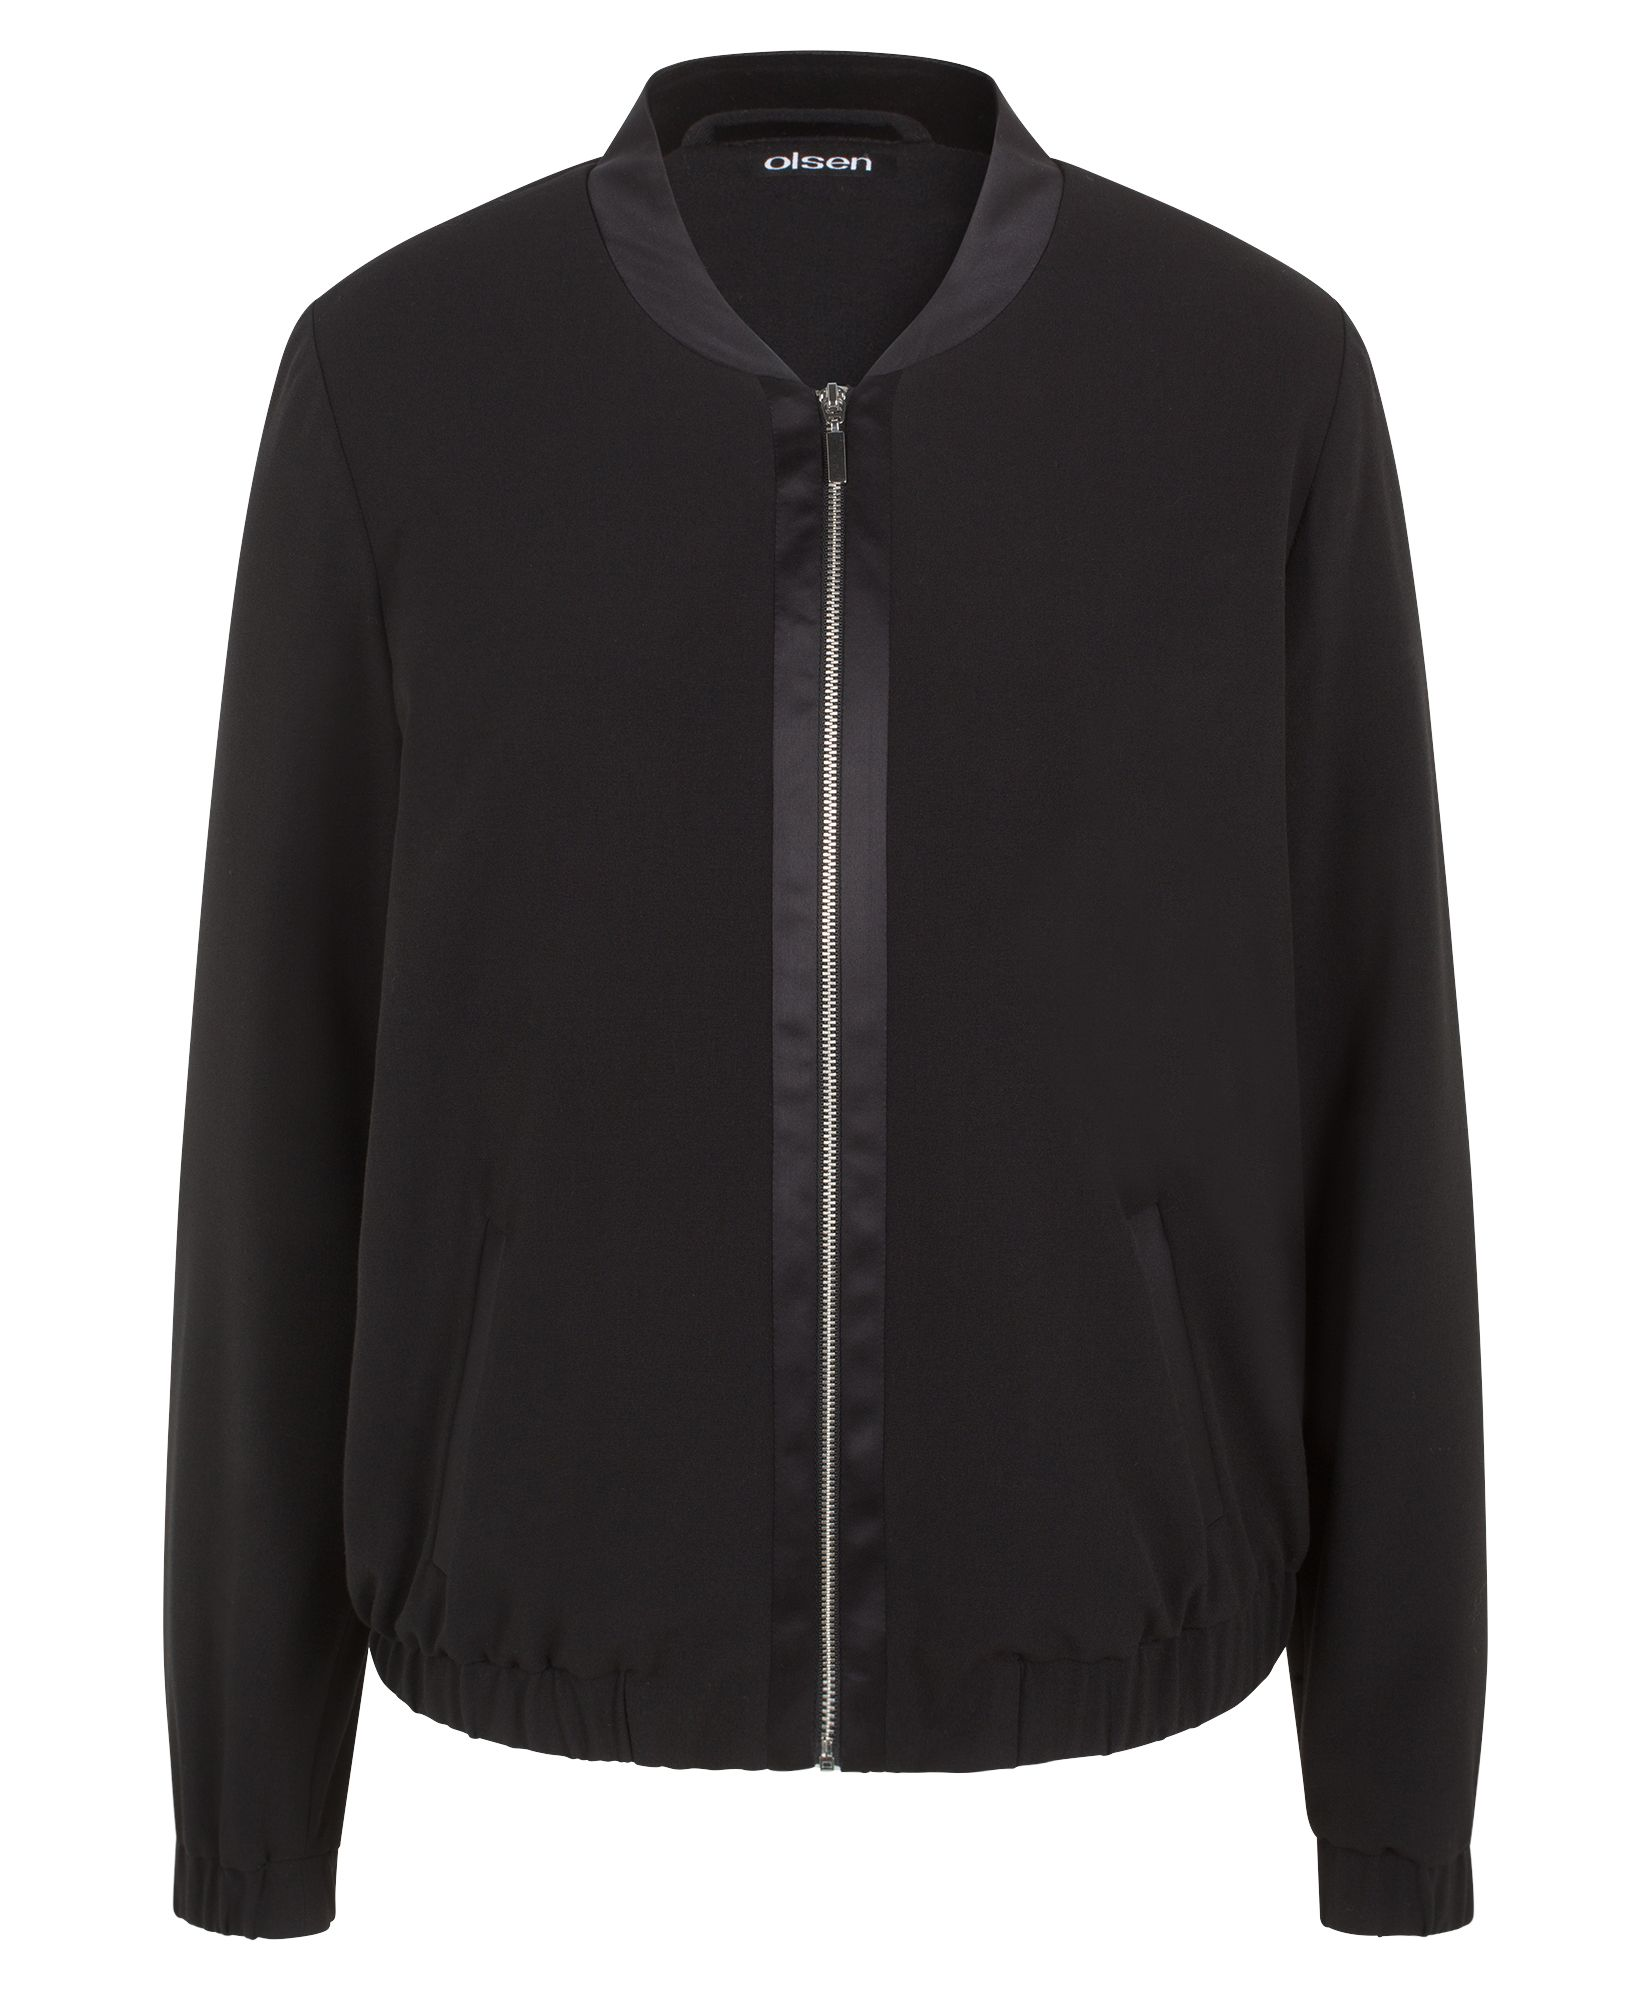 Olsen Satin detail bomber jacket, Black